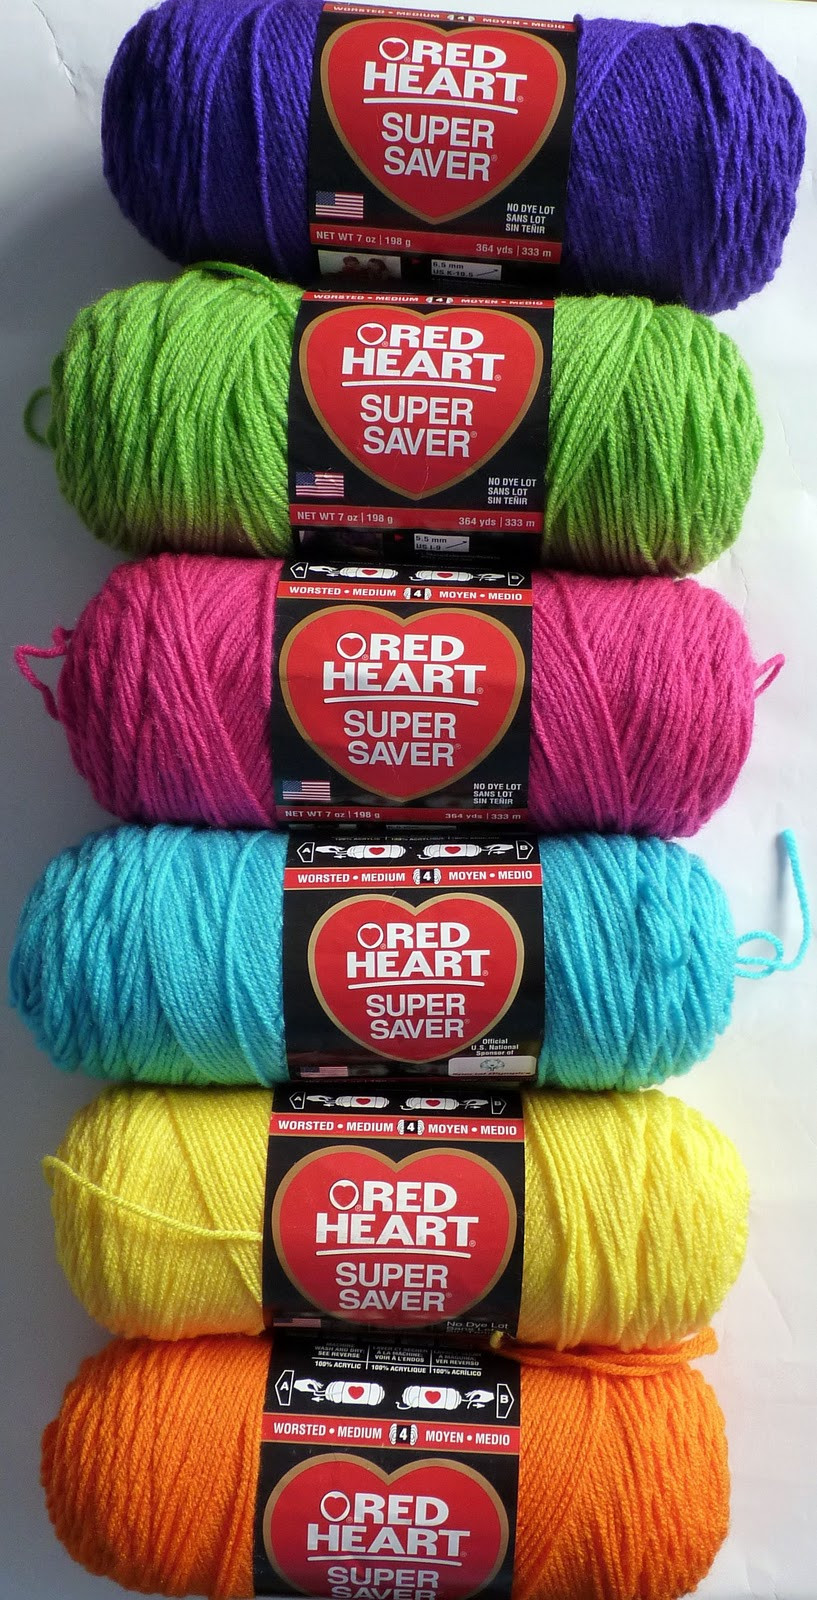 Red Heart Yarn Colors Elegant the Adventures Of the Gingerbread Lady A Tale Of Two Yarns Of Innovative 48 Ideas Red Heart Yarn Colors